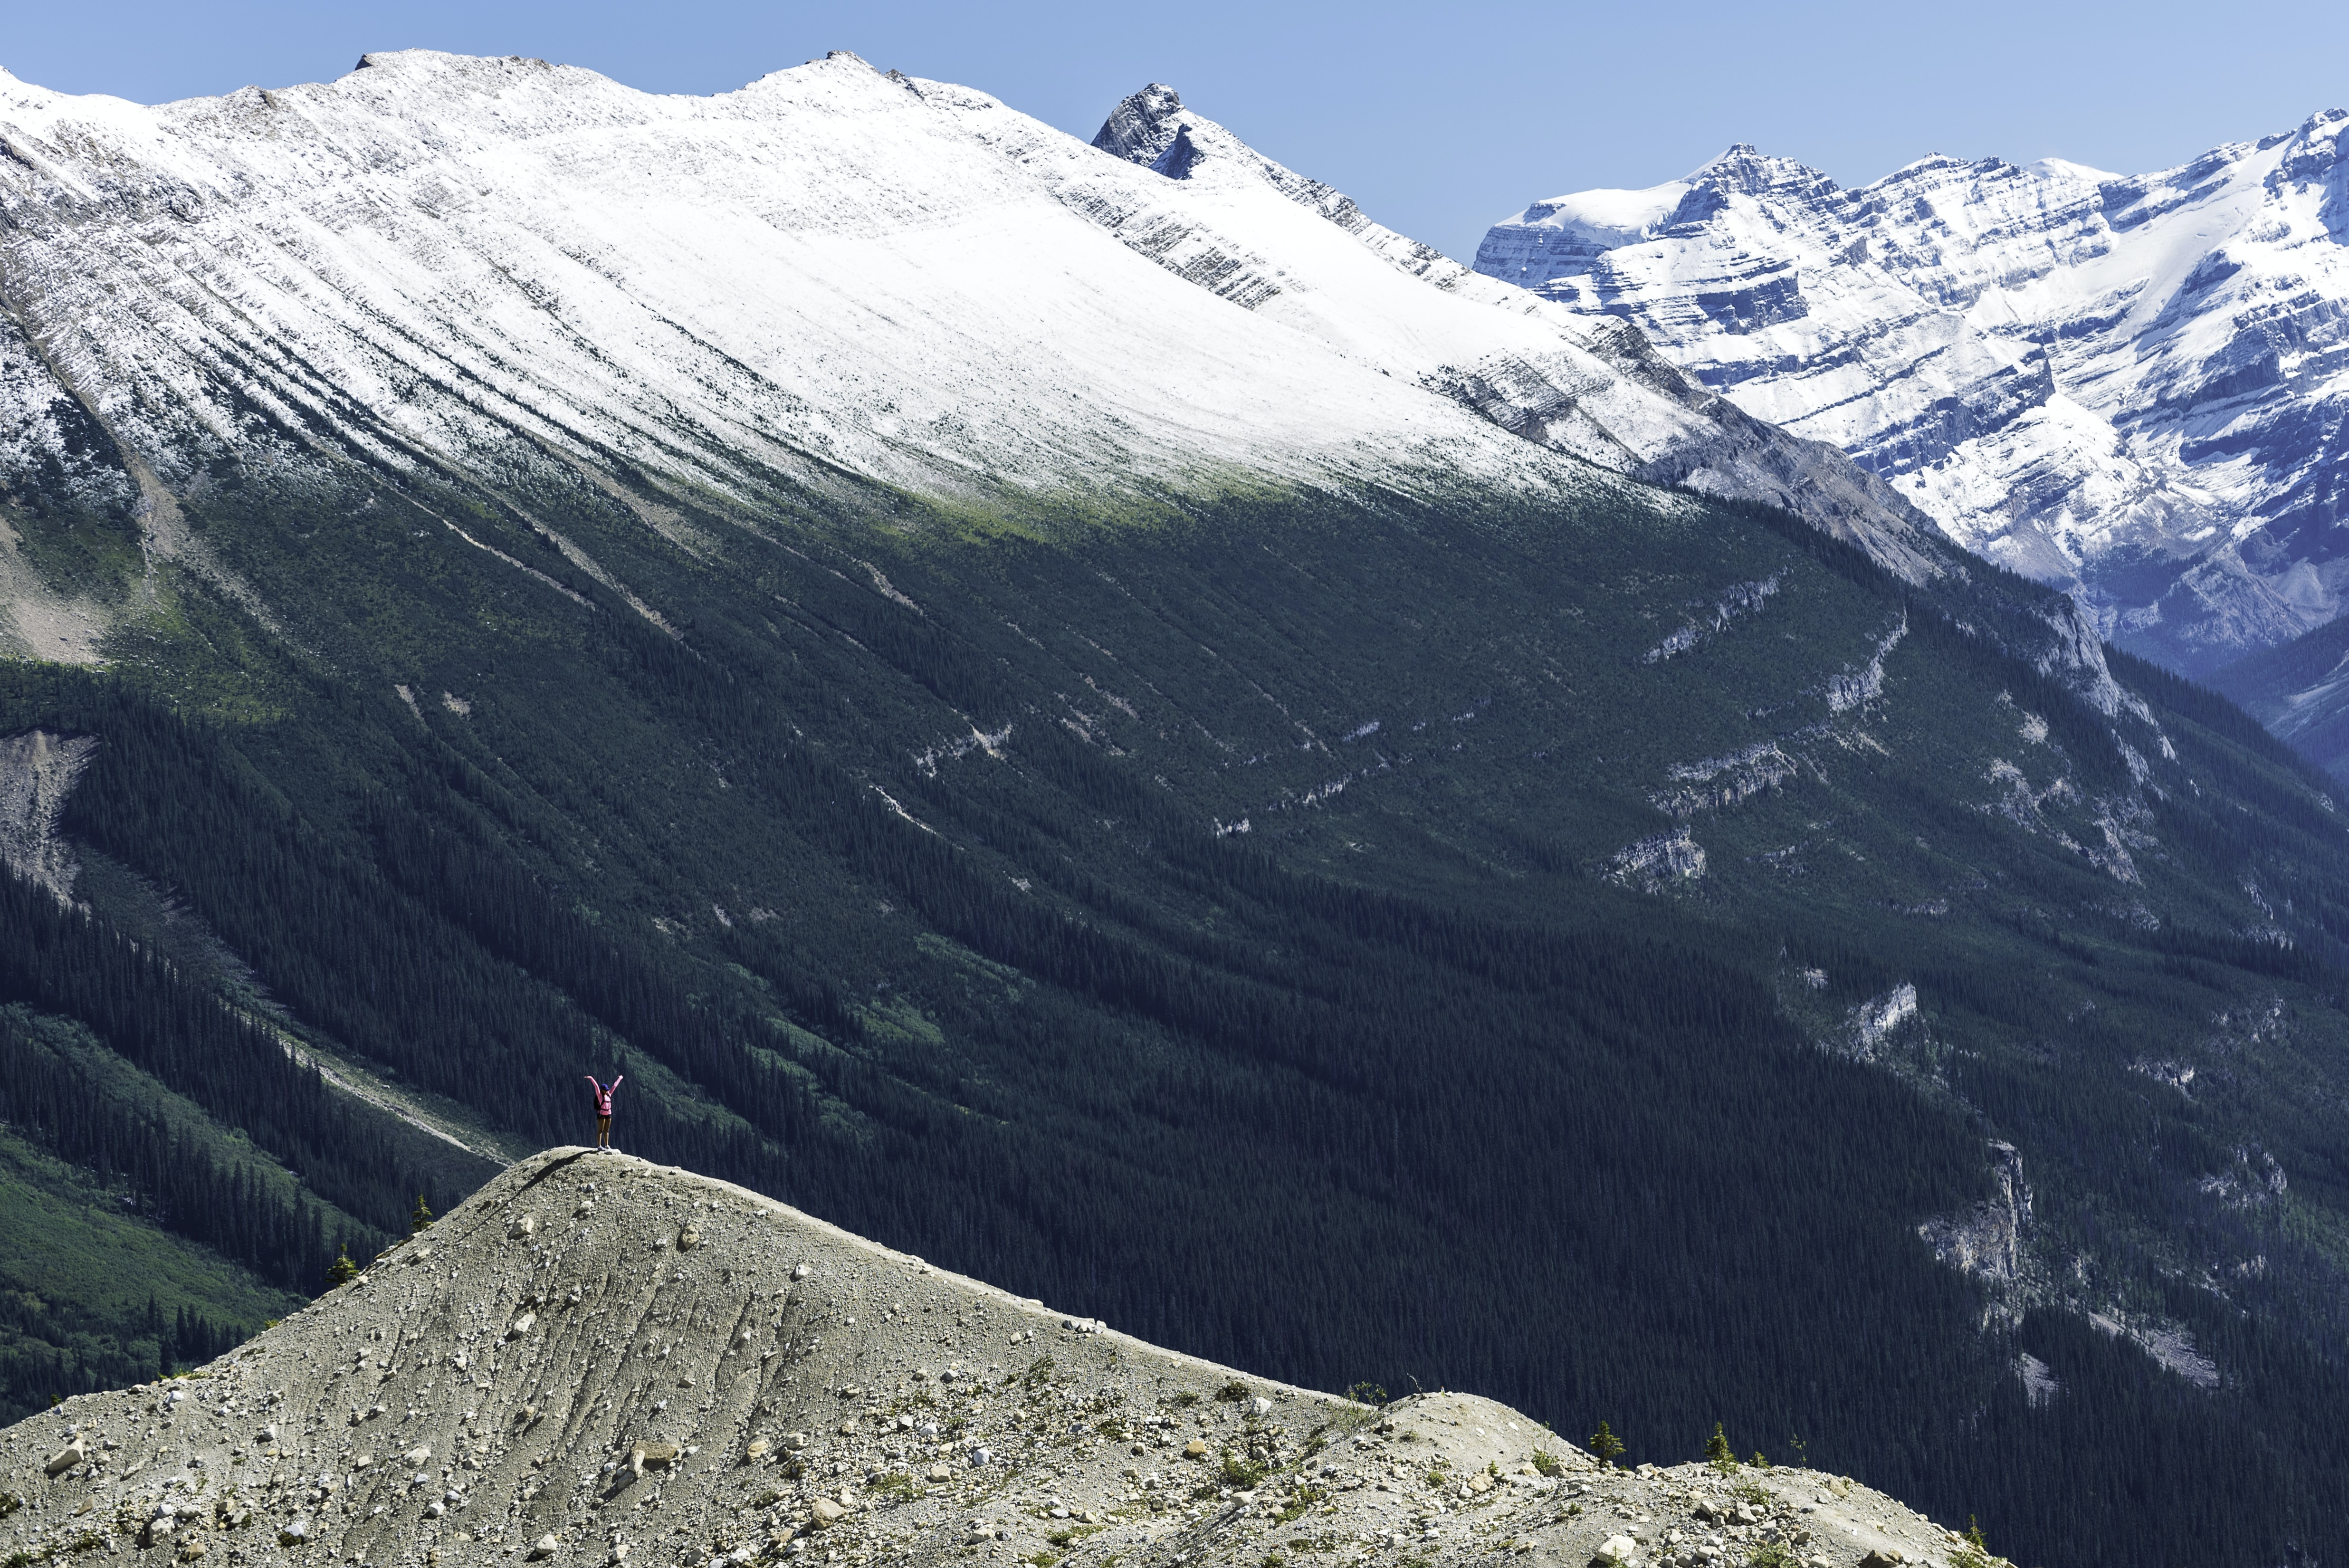 Mountain range half covered in snow and half by green plants in Yoho National Park